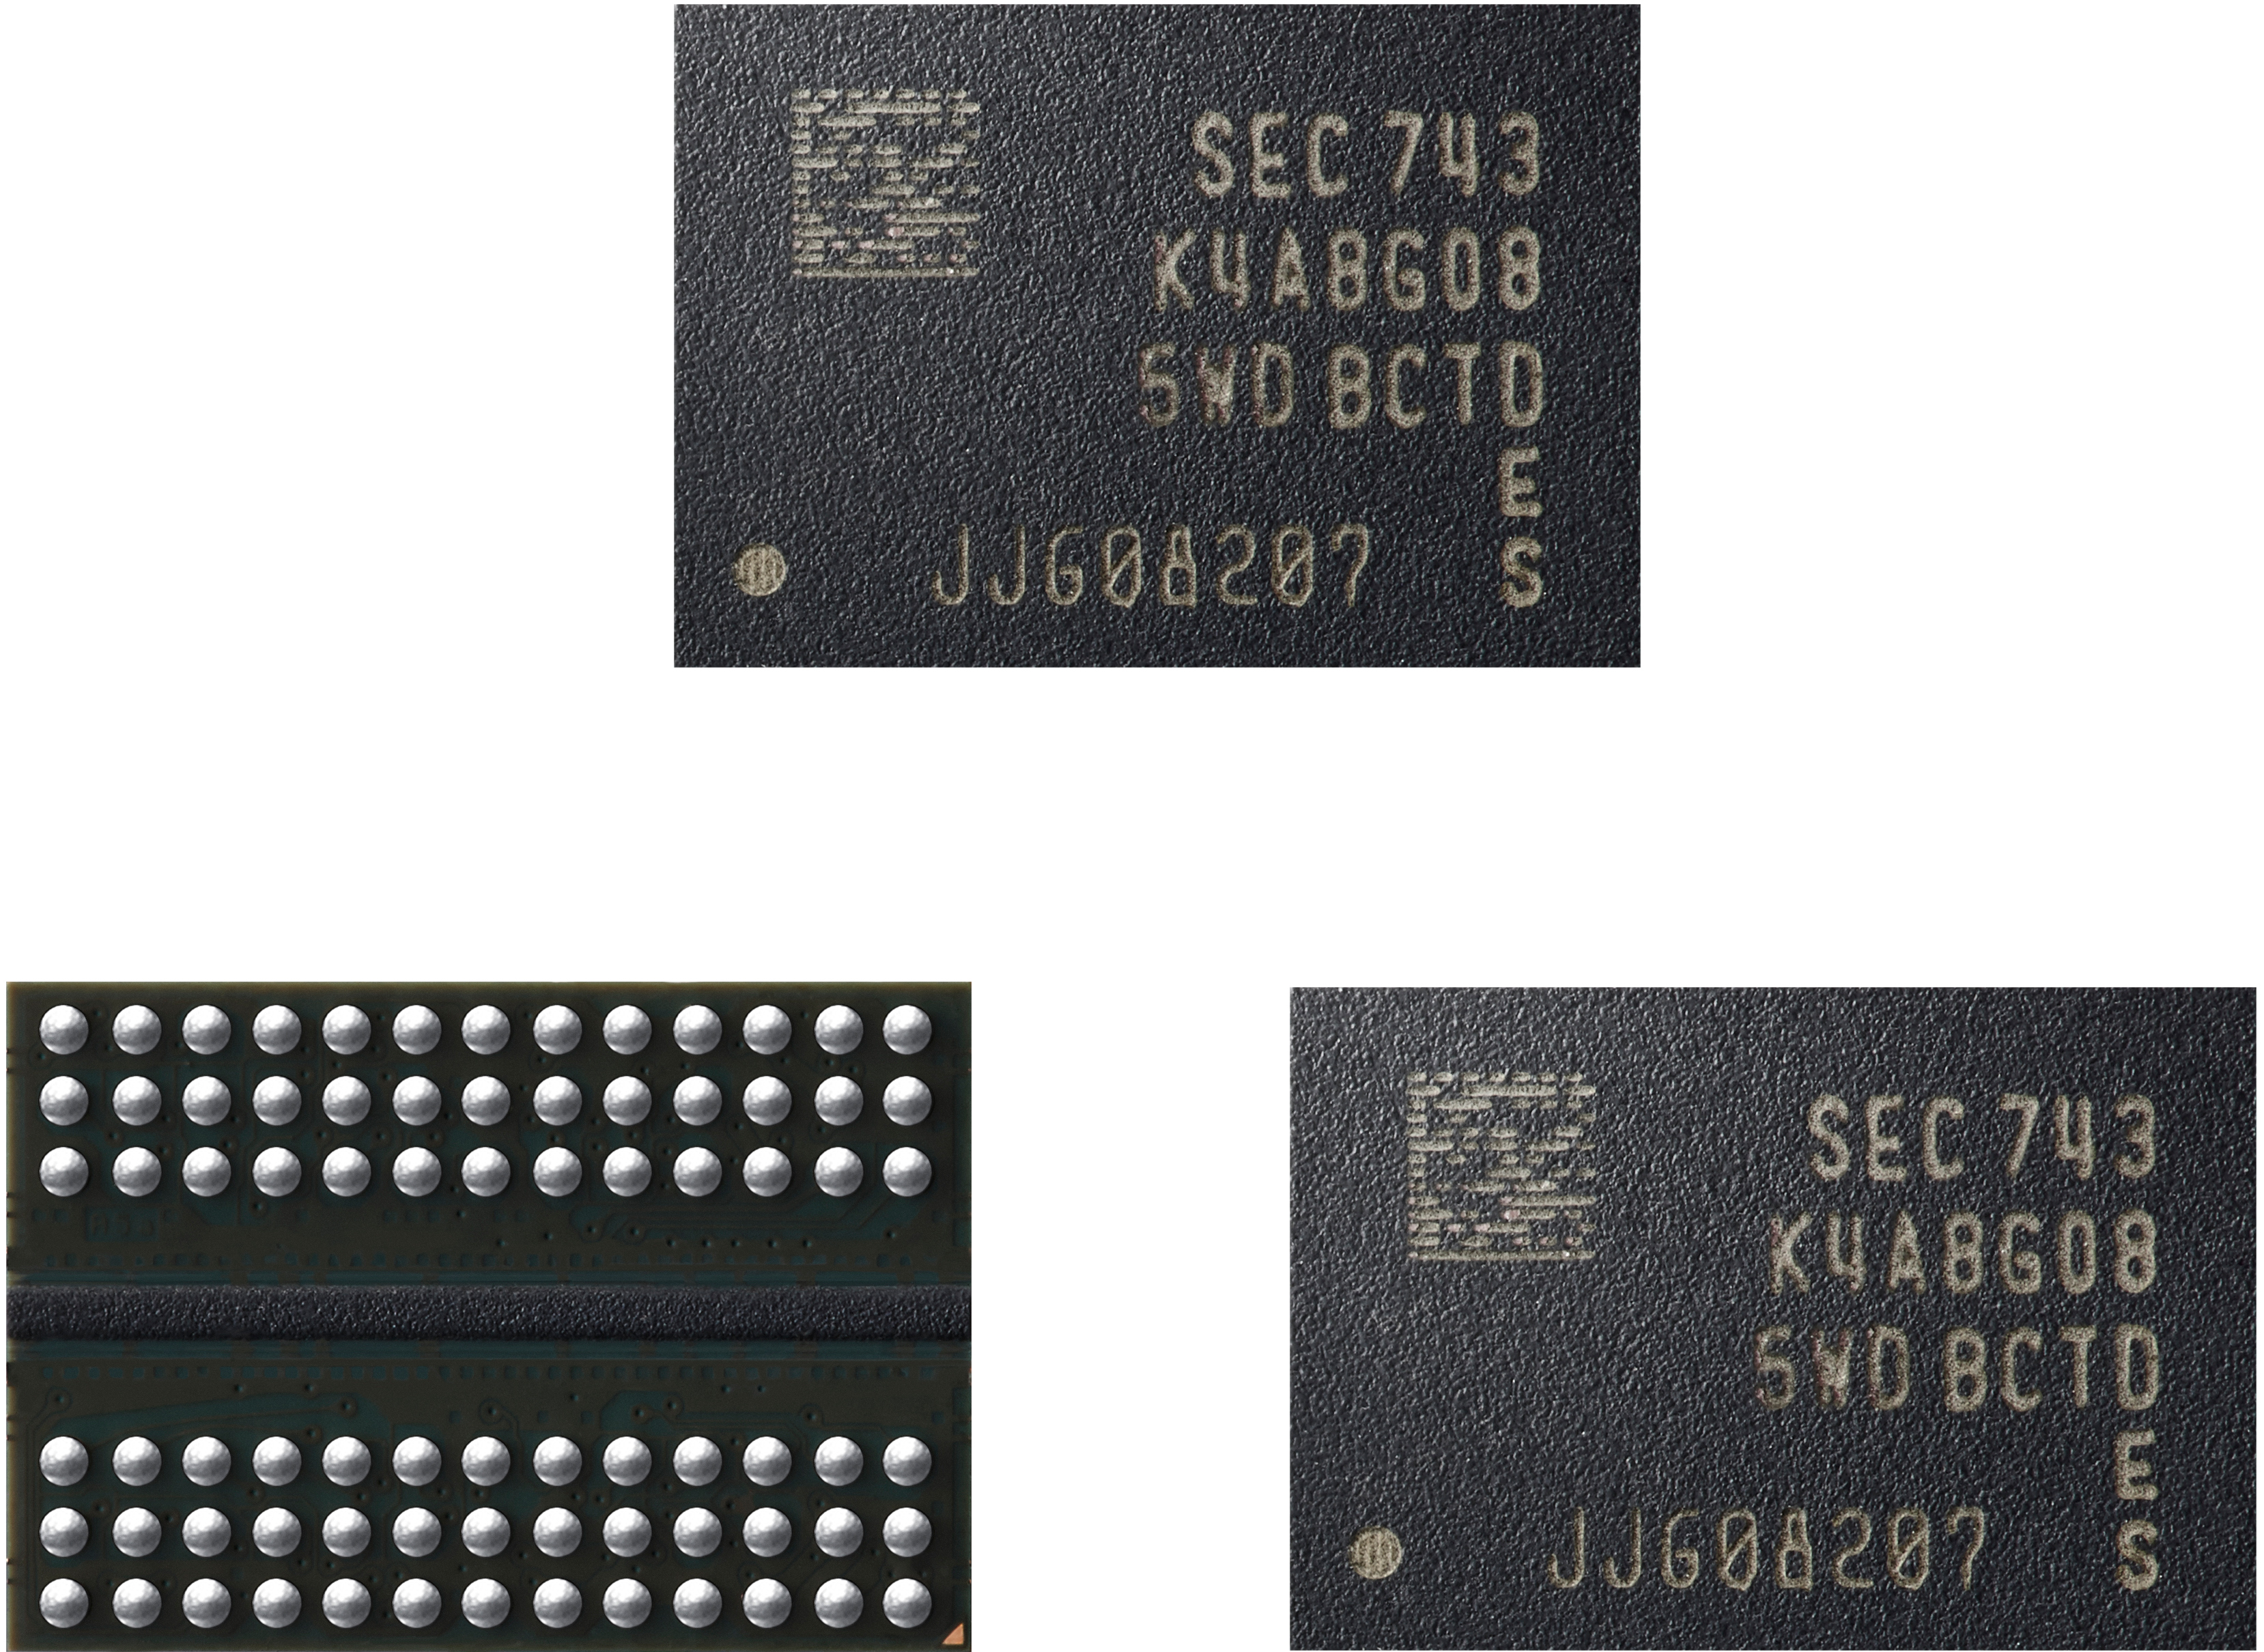 Samsung Unveils 'World's Smallest' DRAM Chip